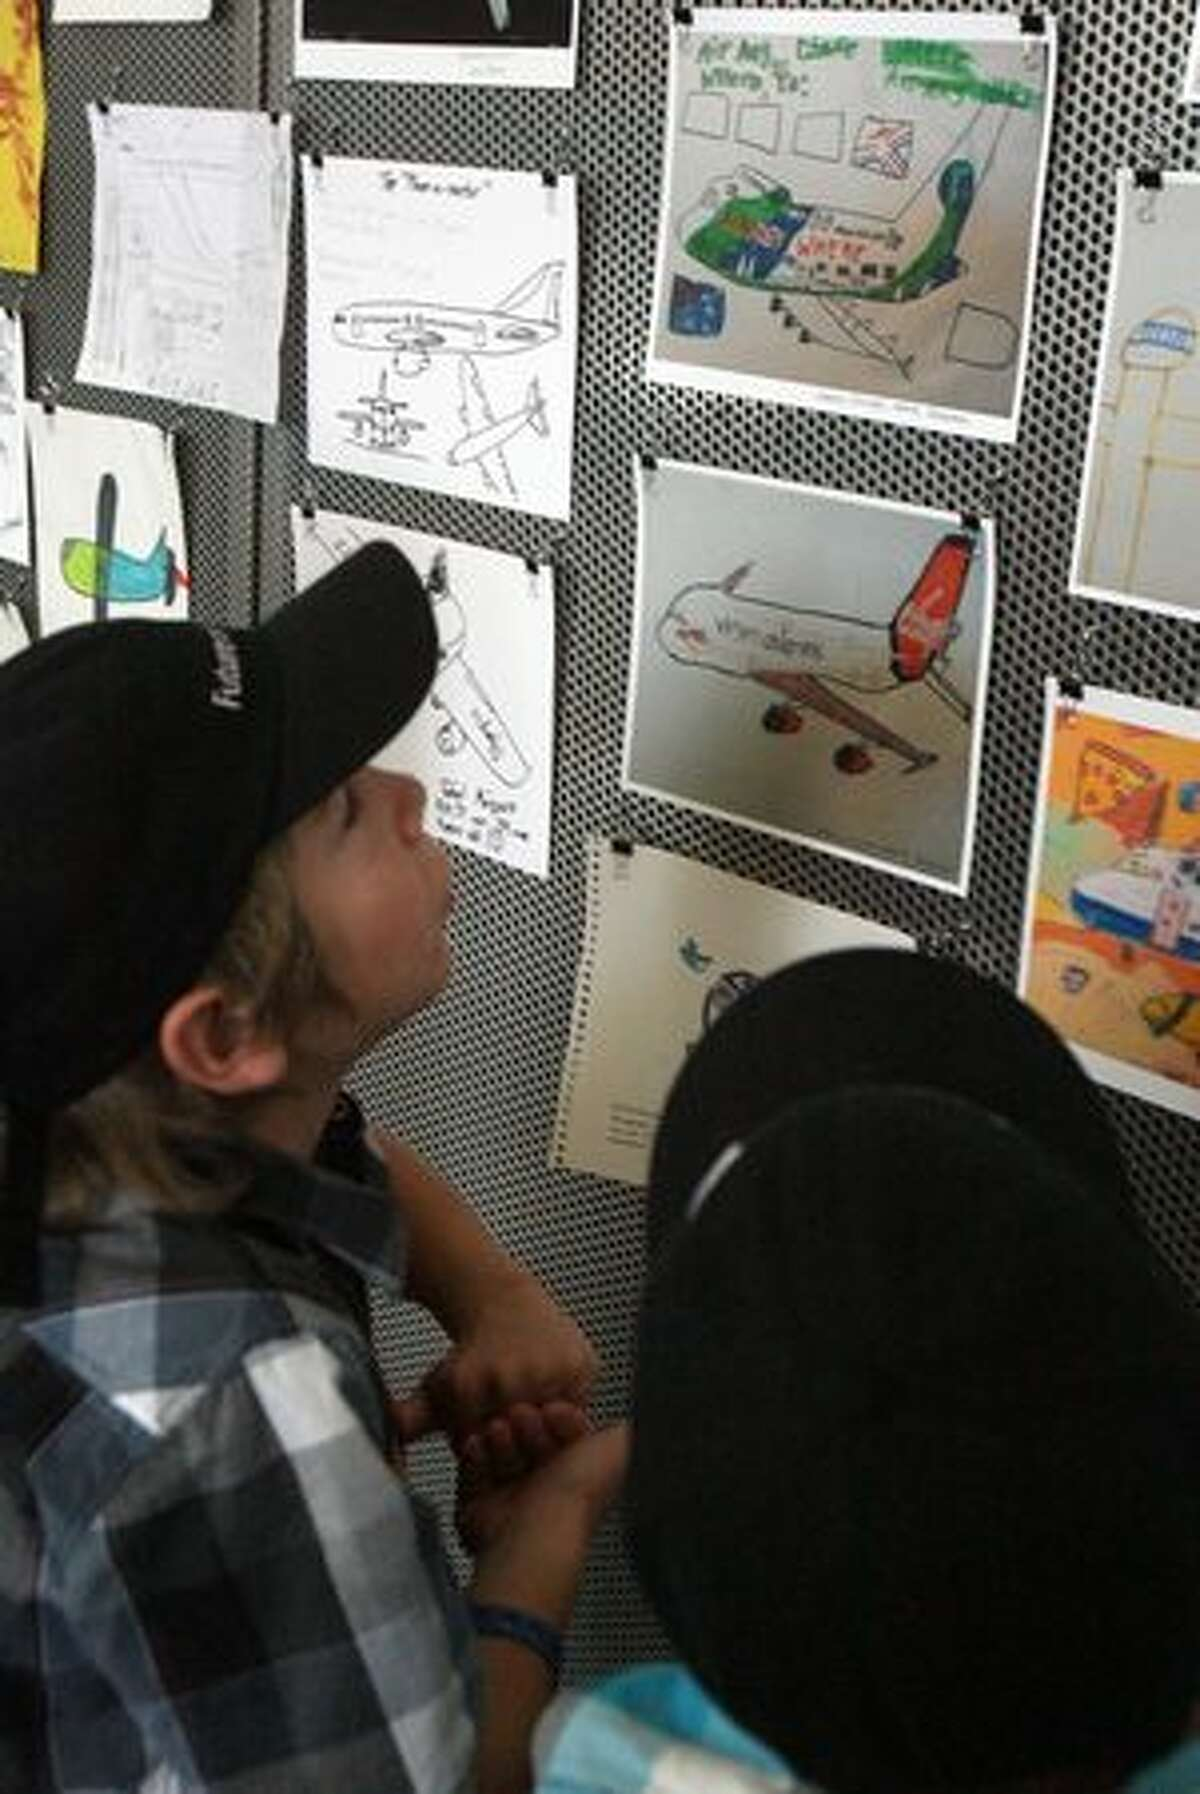 Harry Winsor, 8, looks his entries in an amateur aircraft design drawing show at the Future of Flight Aviation Center, in Mukilteo. The center launched the show in response to a drawing Harry sent to Boeing.